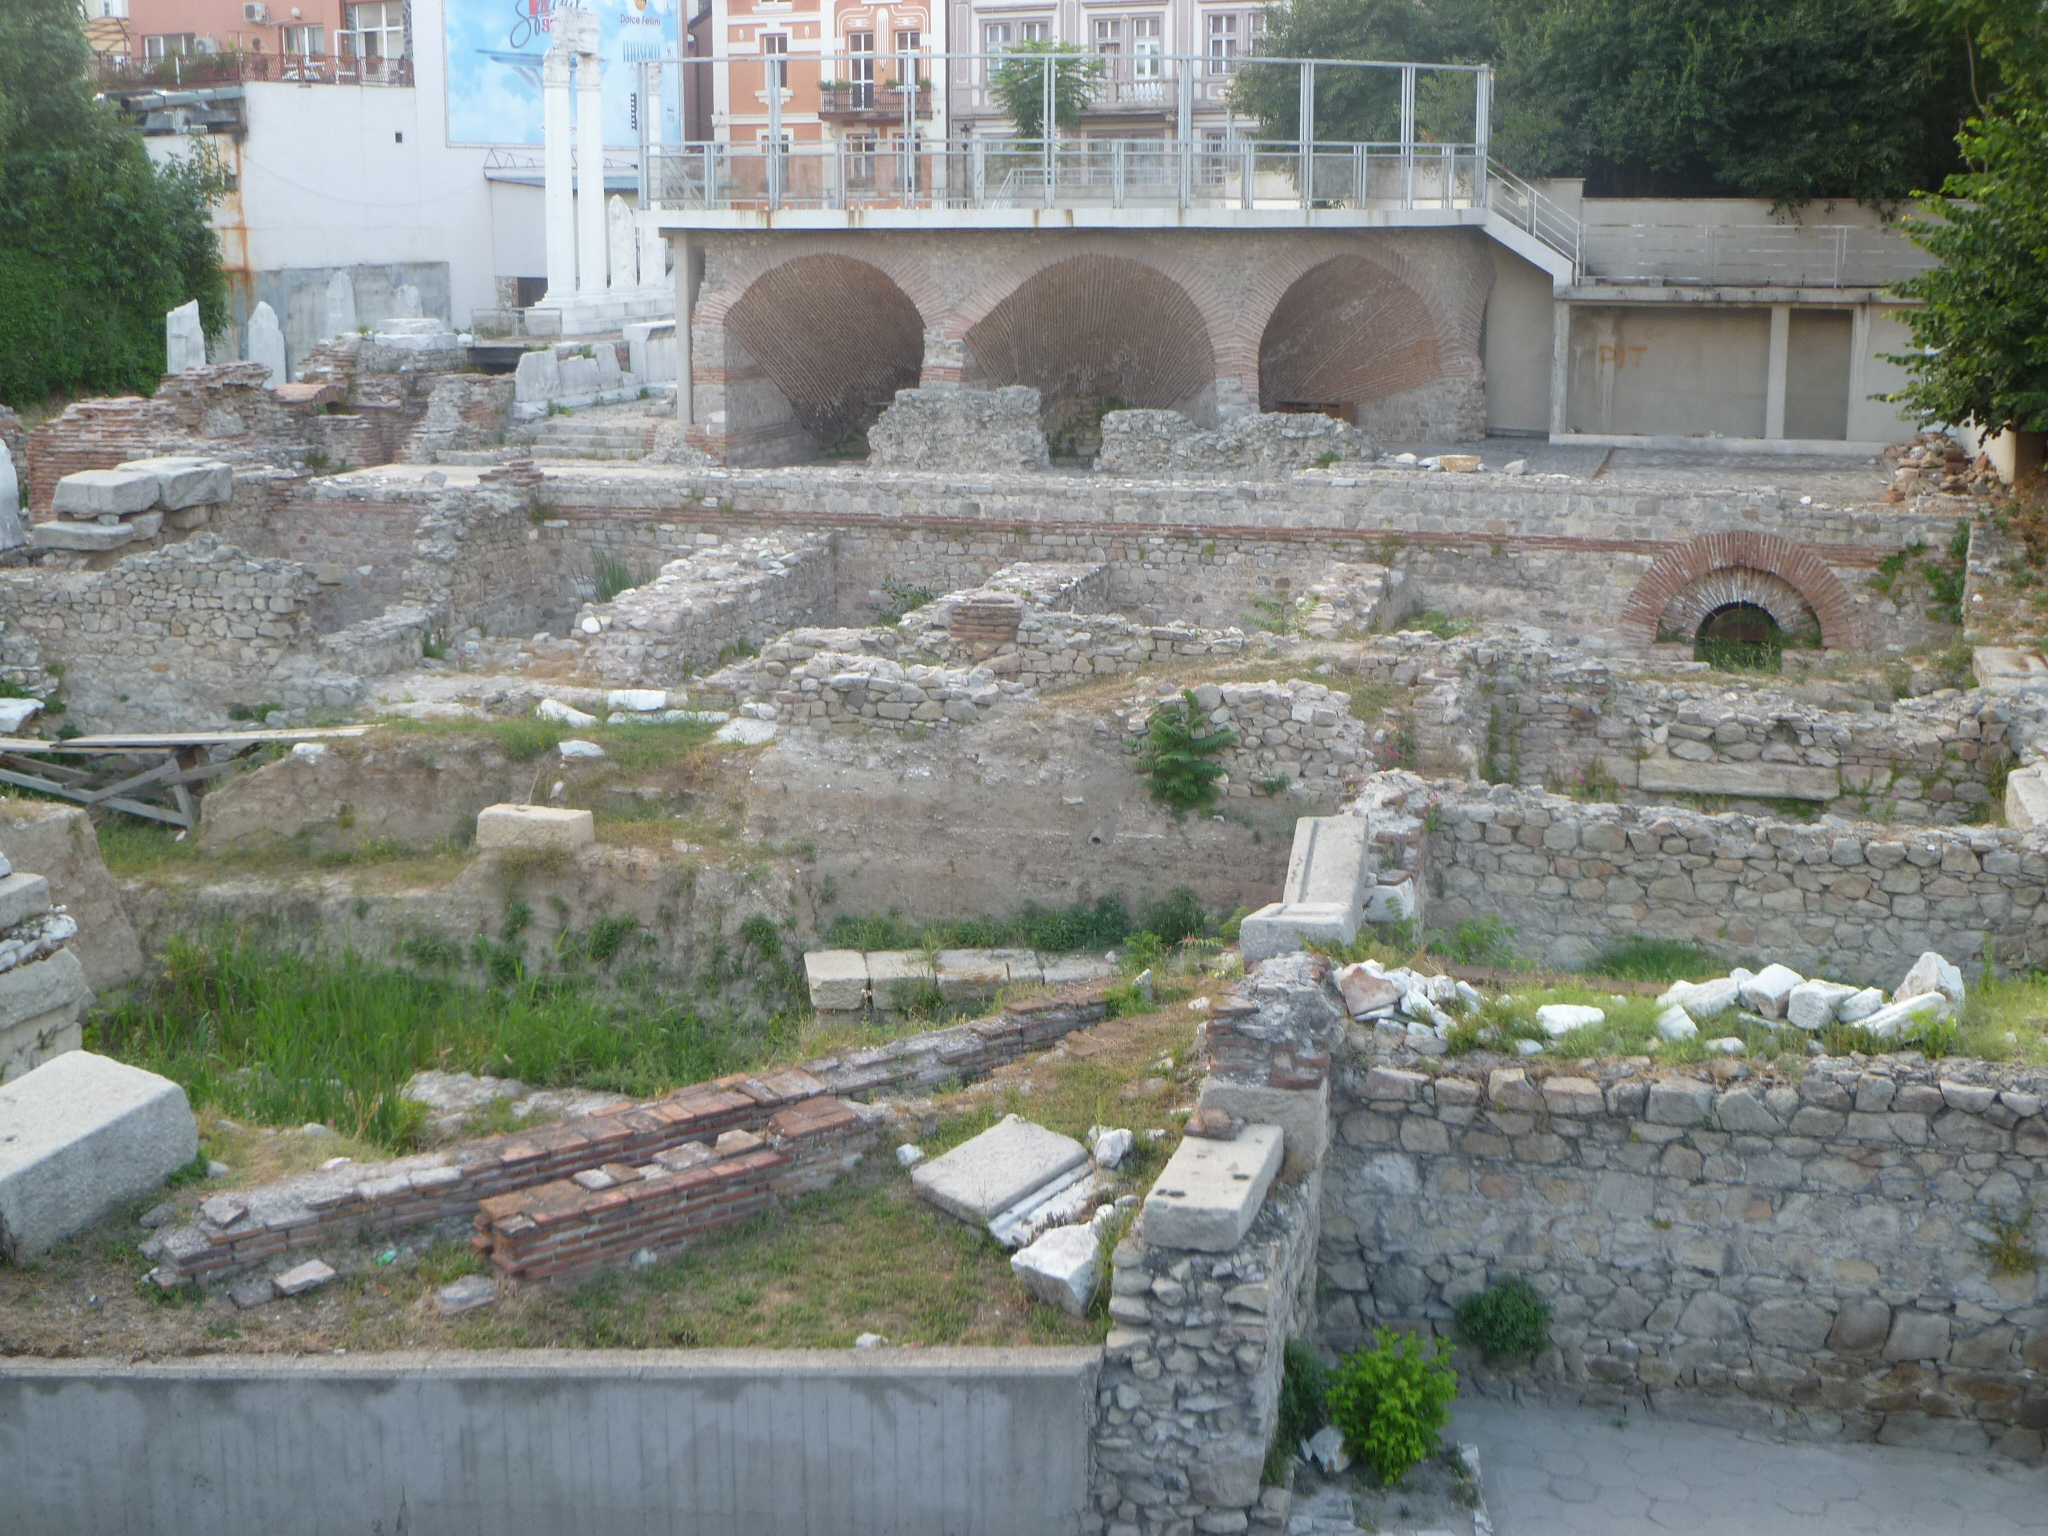 Bulgaria ups funding for archaeology in 2014 amid criticism over scant cash